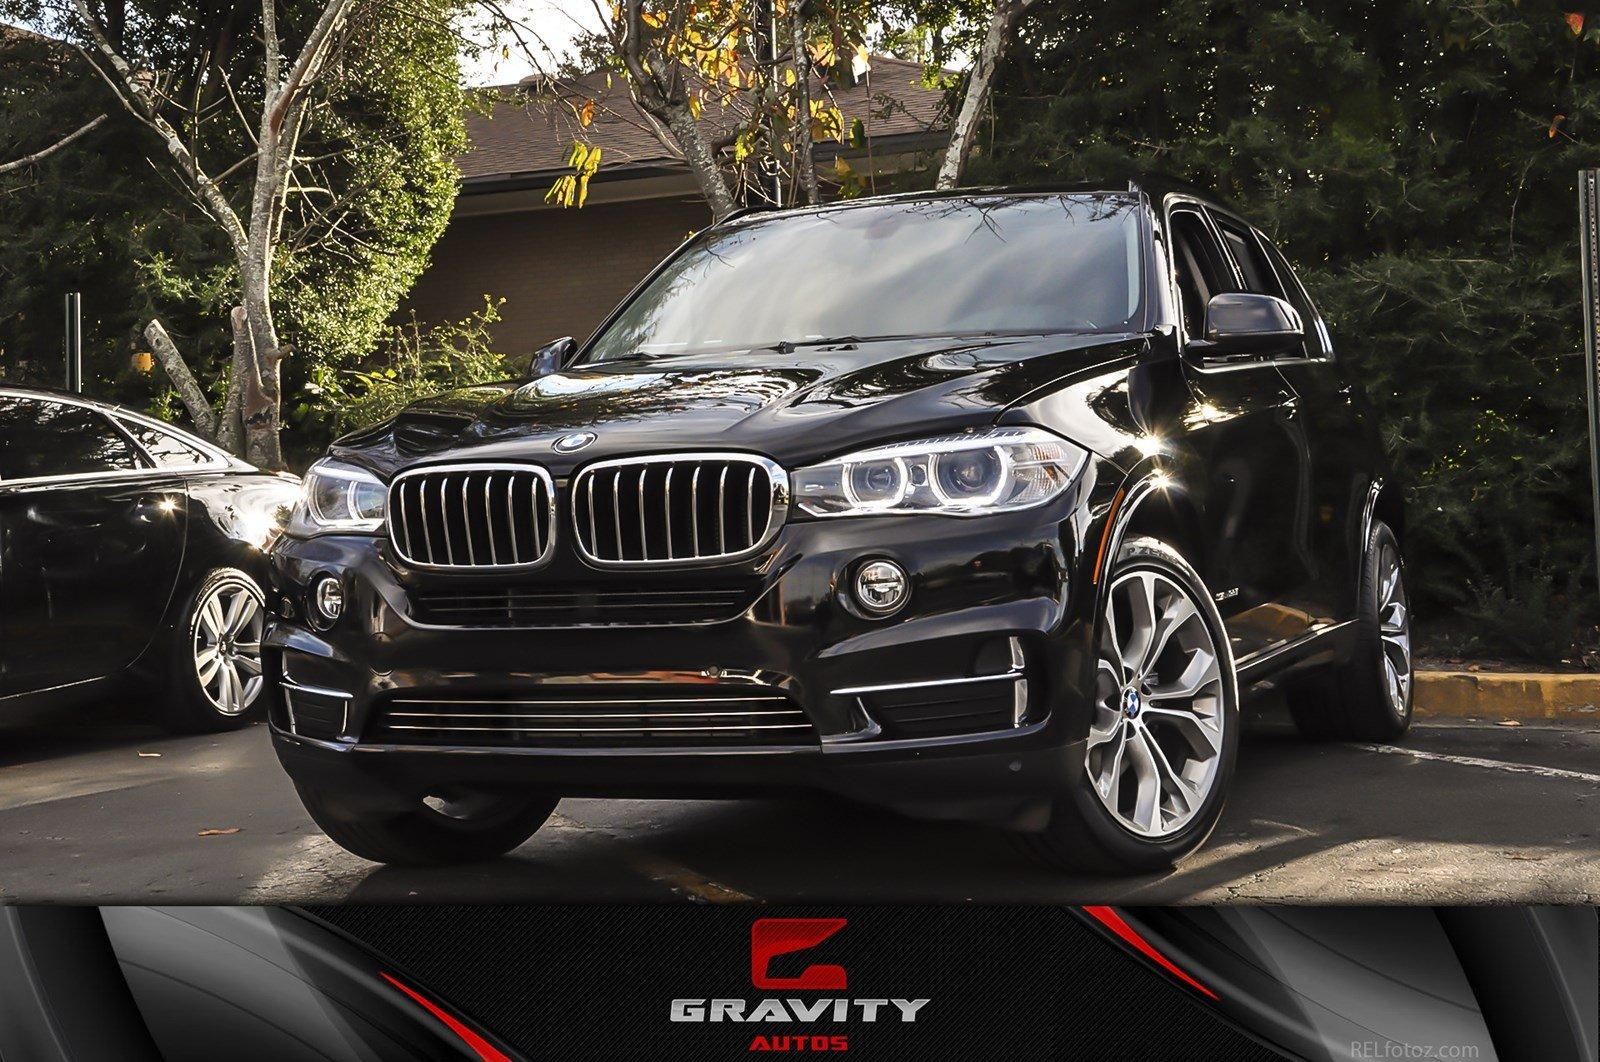 BMW 3 Series bmw x5 atlanta 2015 BMW X5 X5 xDrive35i Stock # P00291 for sale near Atlanta, GA ...